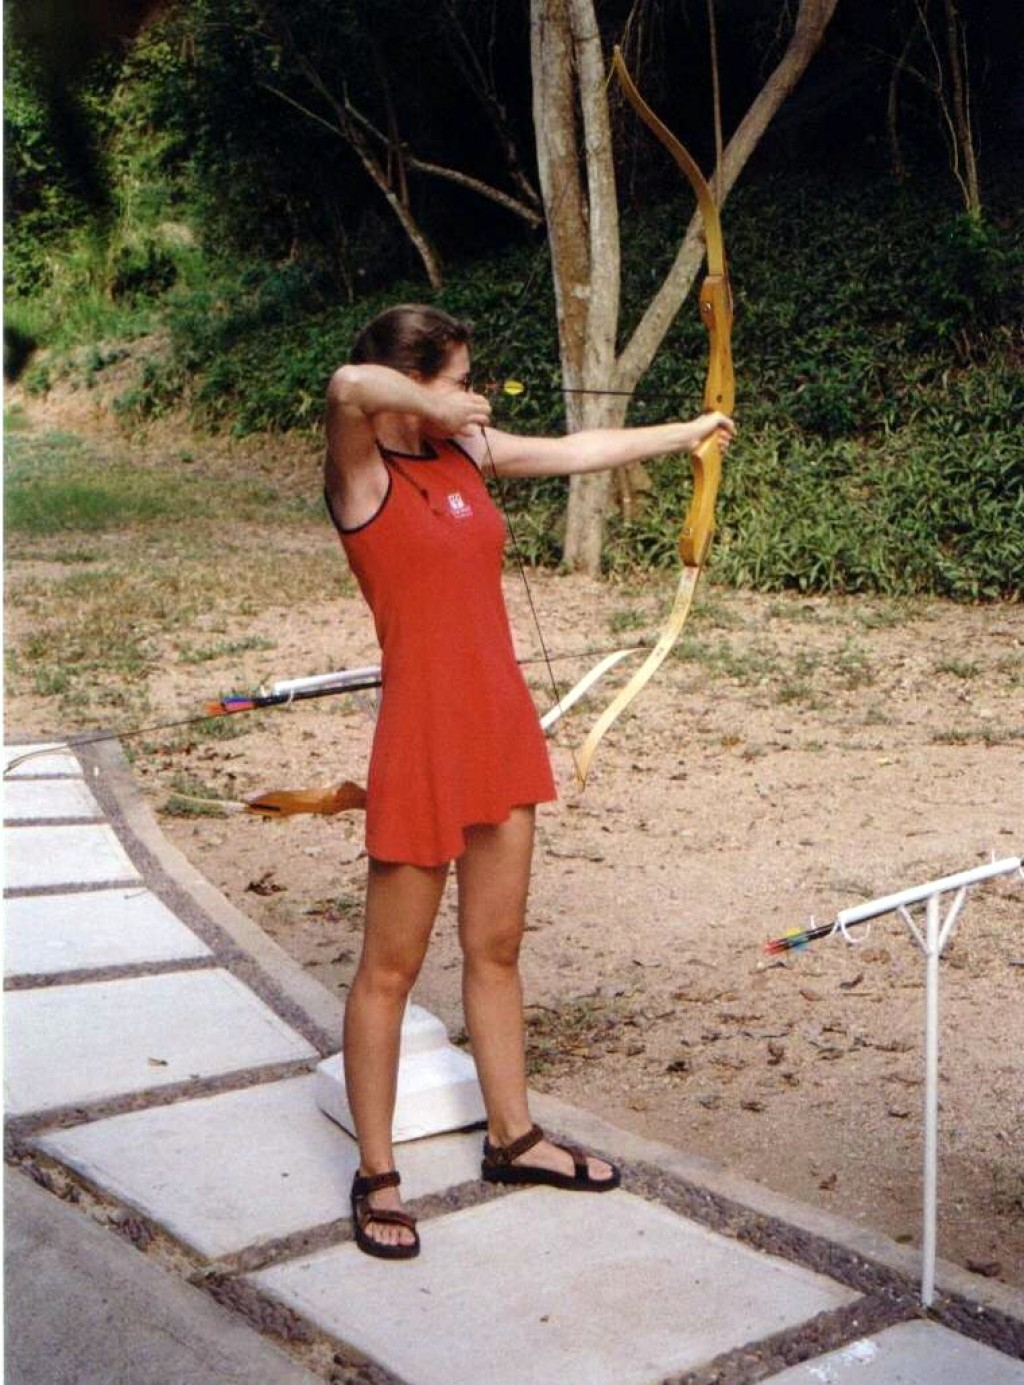 Wendy on the way to her third place medal in the archery competition.  And yes, there were more than three contestants!